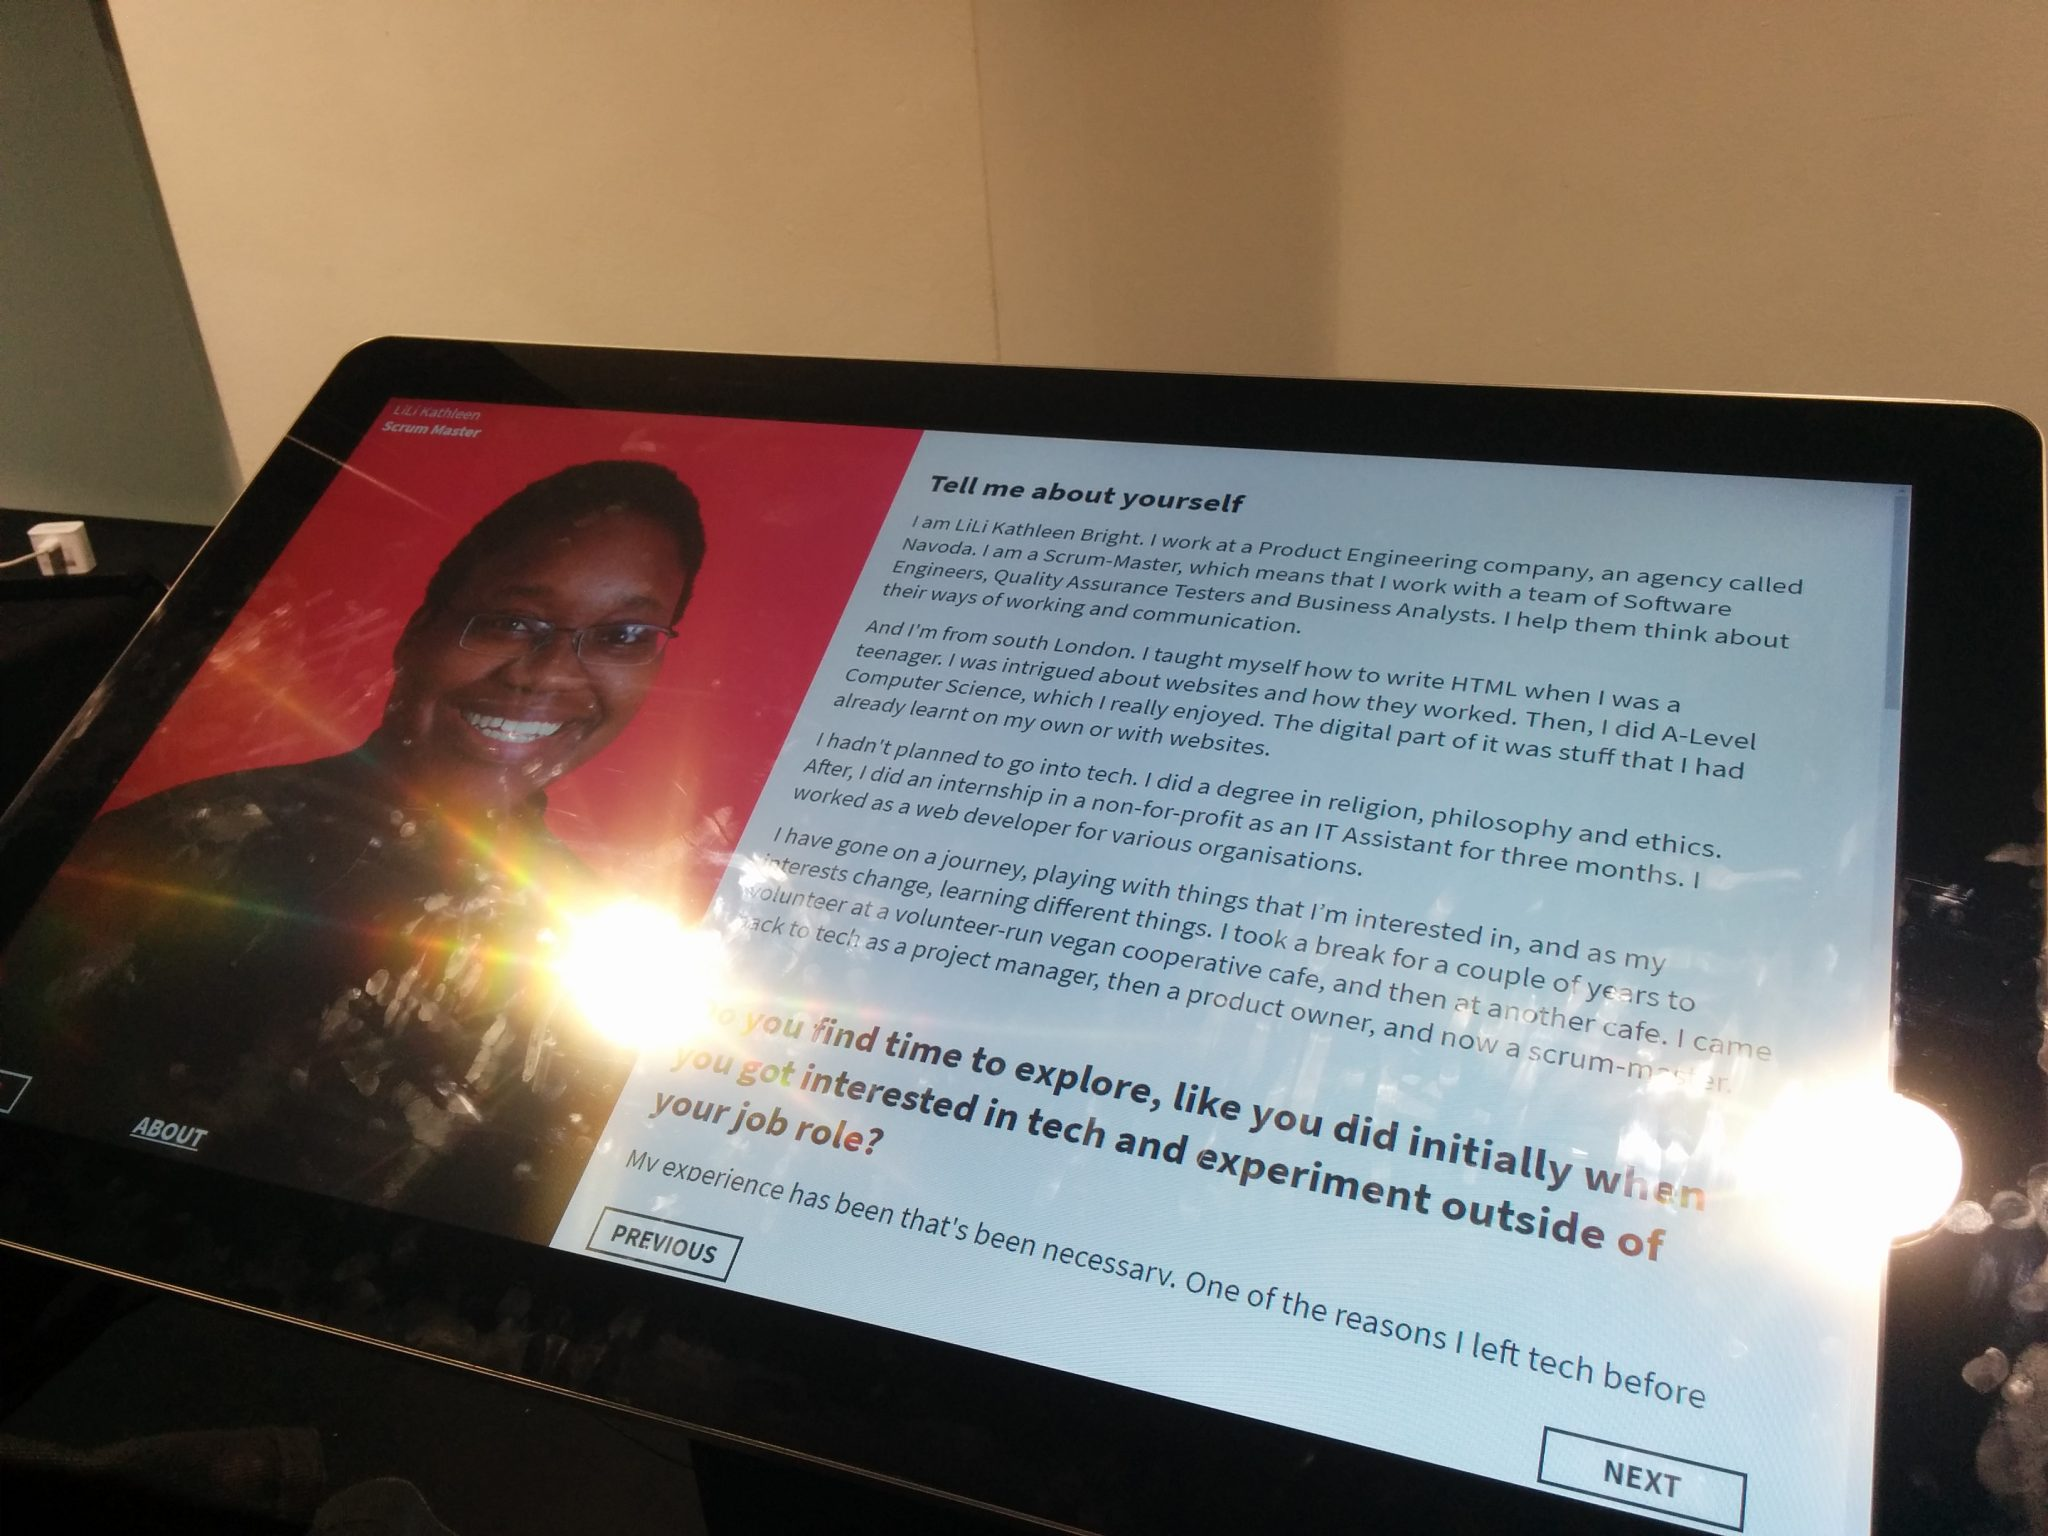 Photo of LiLi Kathleen on a screen as part of the Black Techies project exhibition that has inclusion at its heart